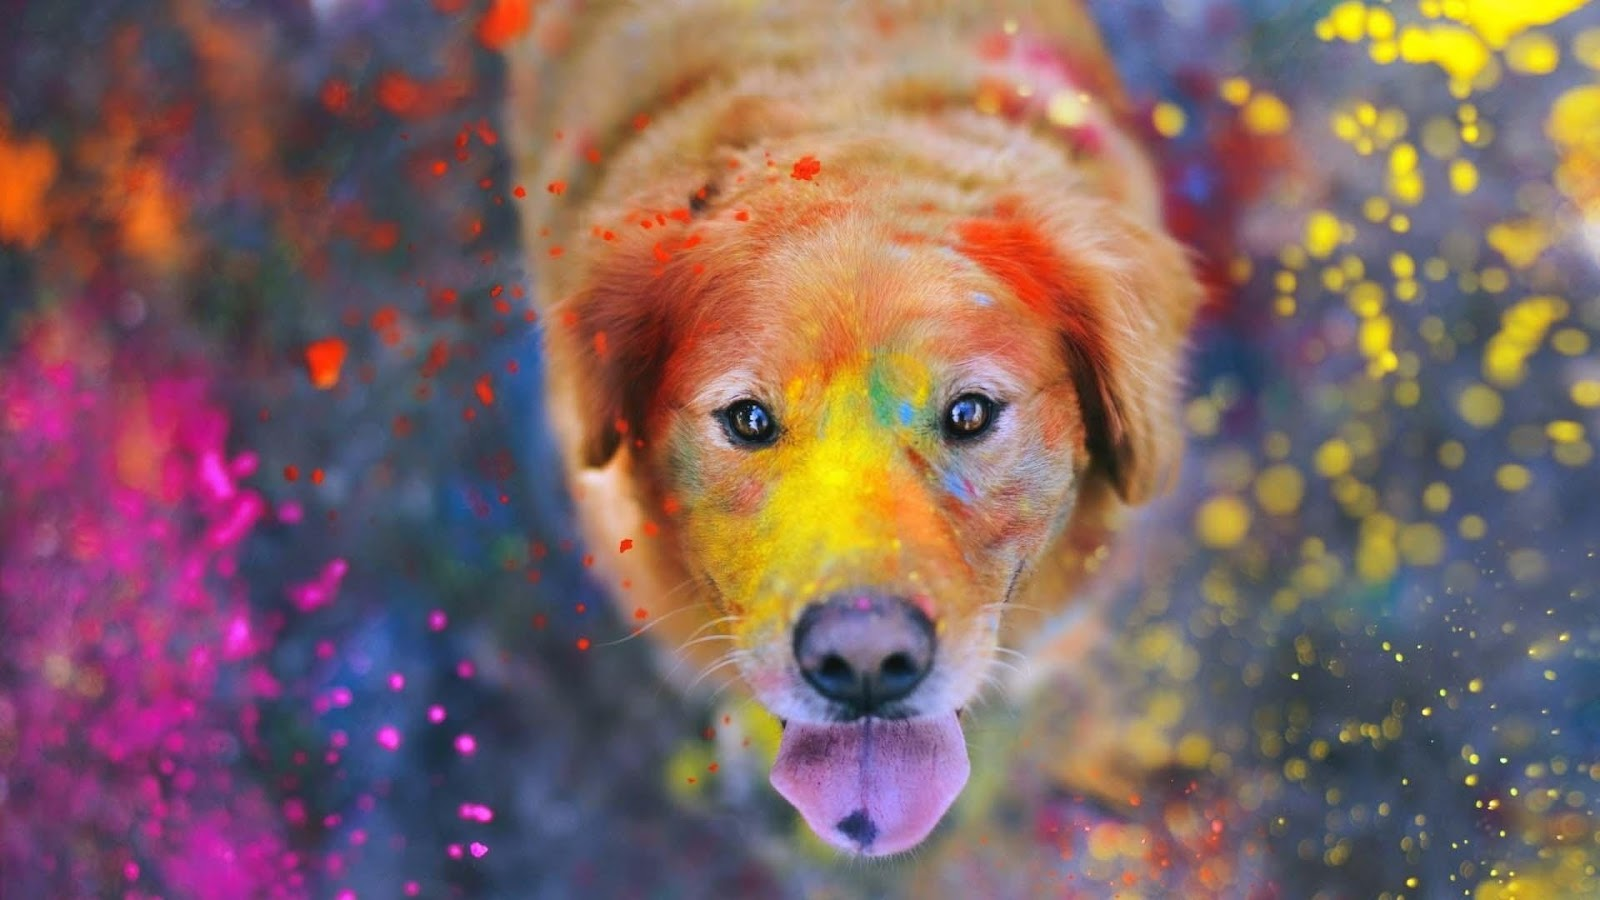 Golden Retriever Images Wallpapers 38 Wallpapers Adorable Wallpapers